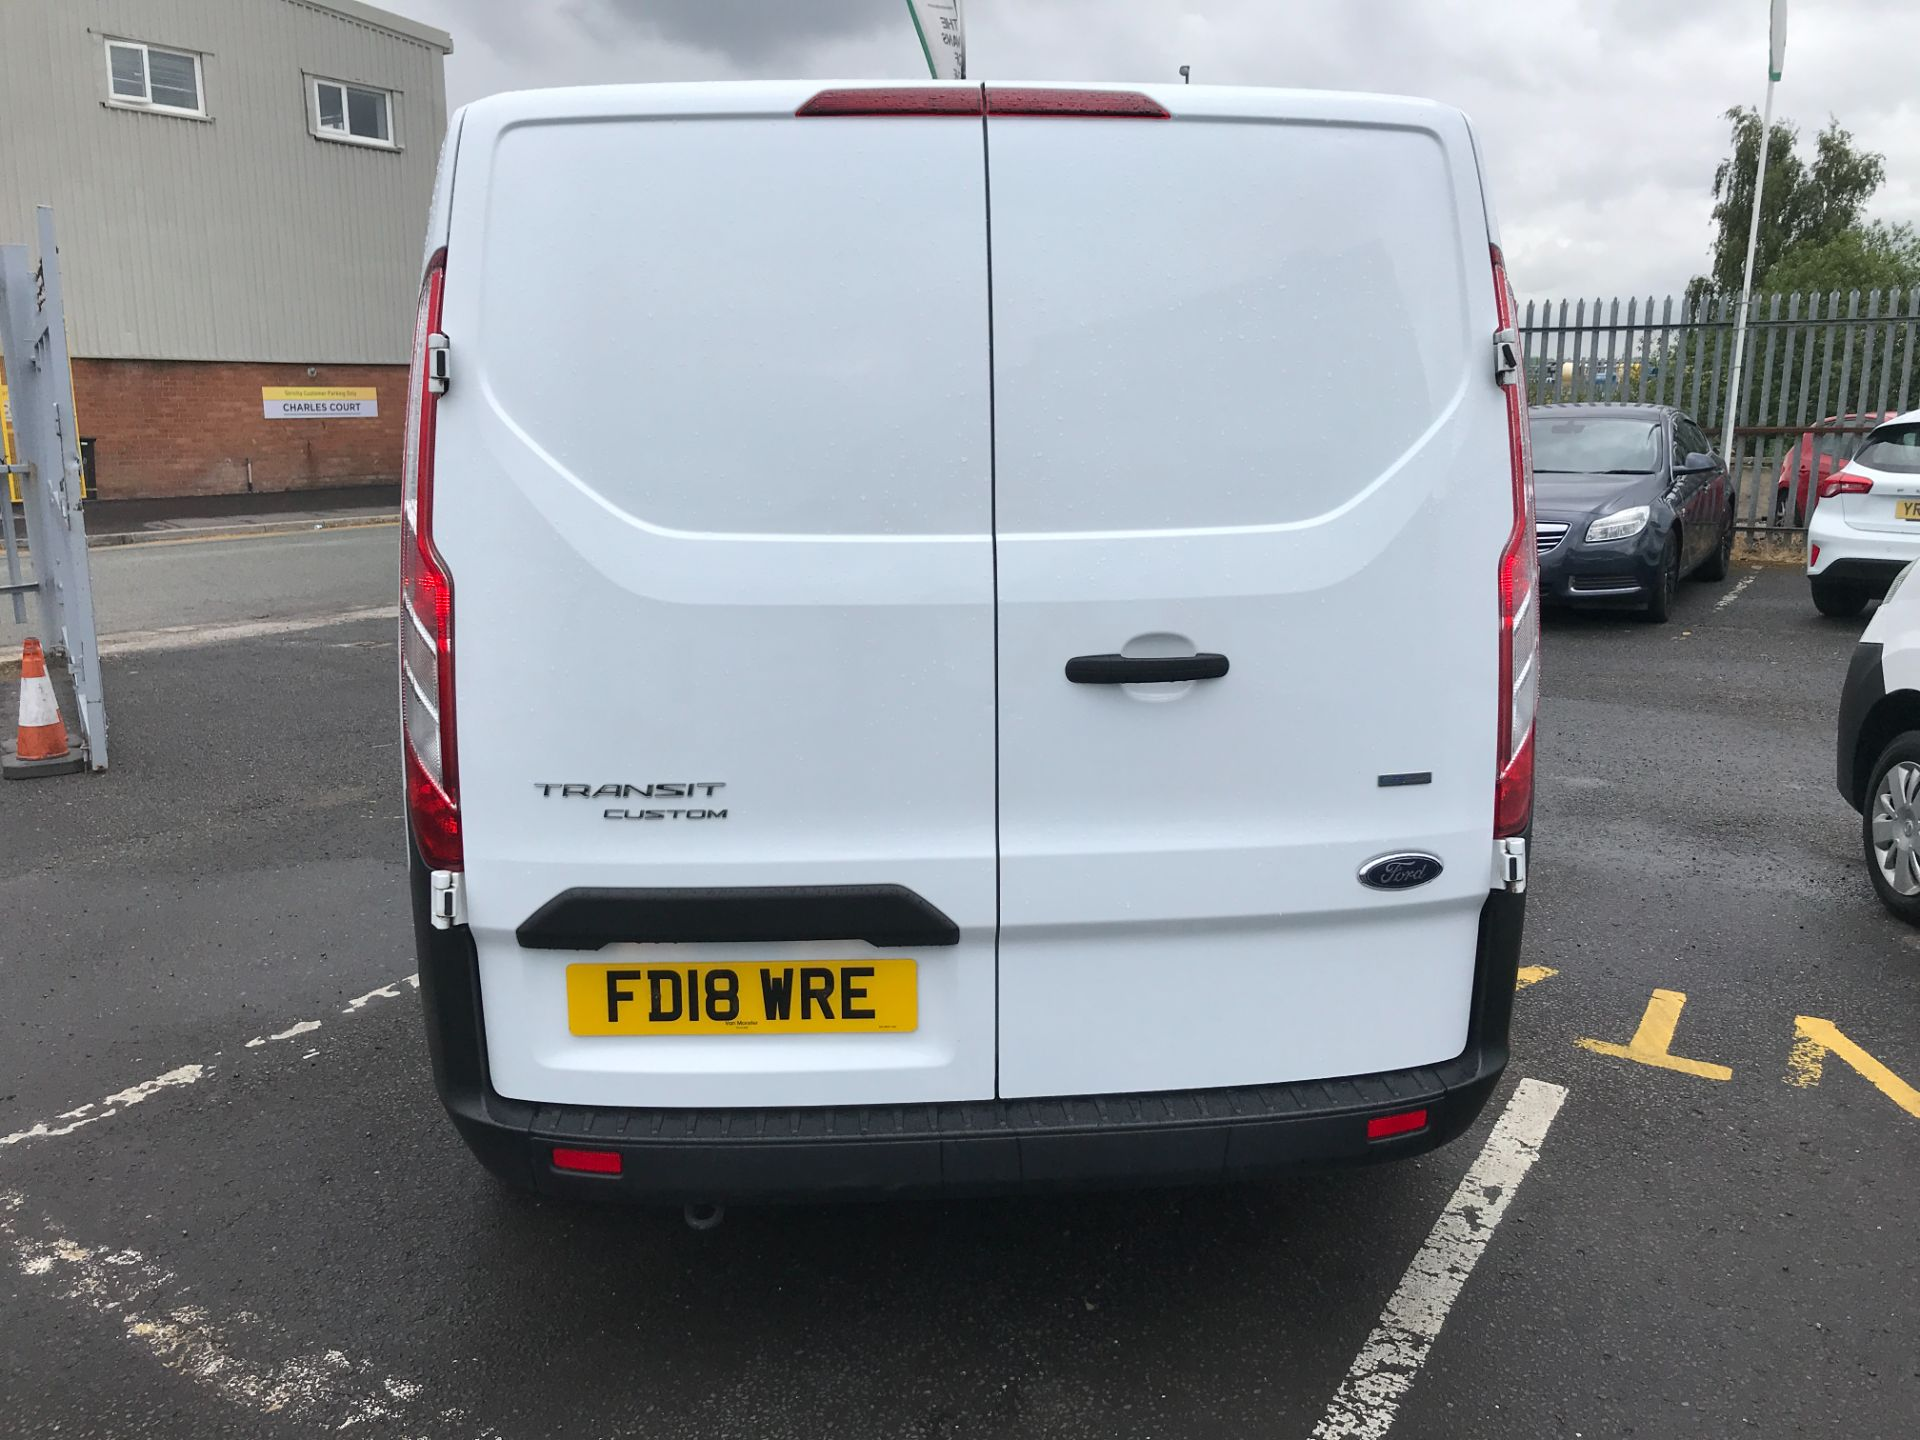 2018 Ford Transit Custom 300 L1 2.0TDCI 105PS LOW ROOF EURO 6 DOUBLE CAB (FD18WRE) Image 9